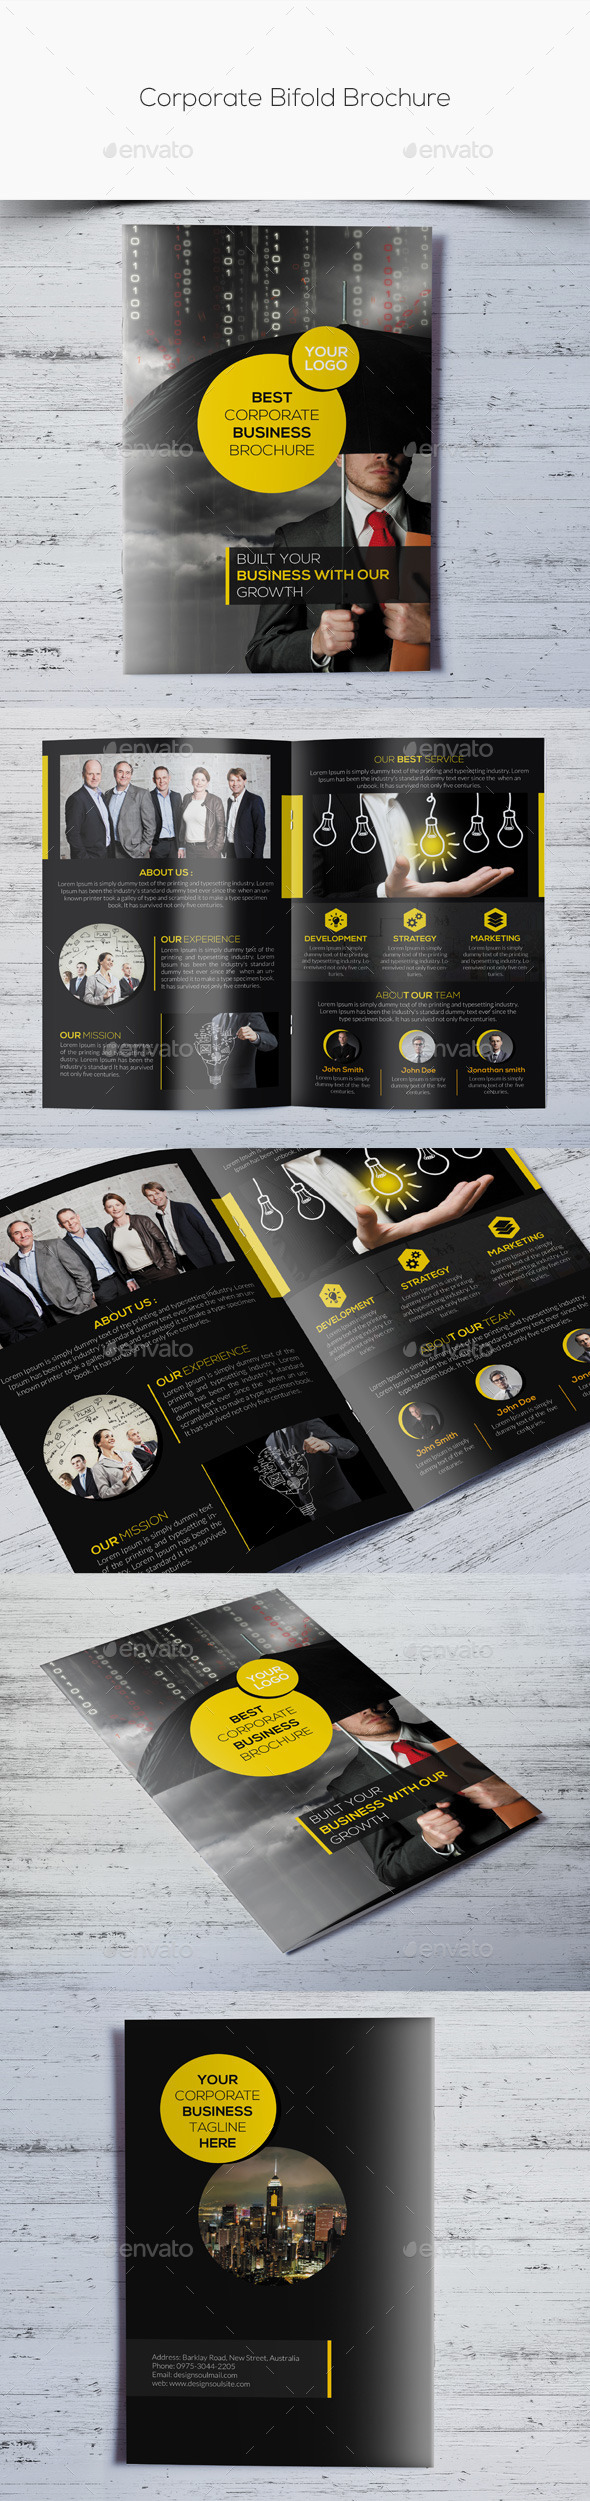 GraphicRiver Corporate Bifold Brochure 10853588